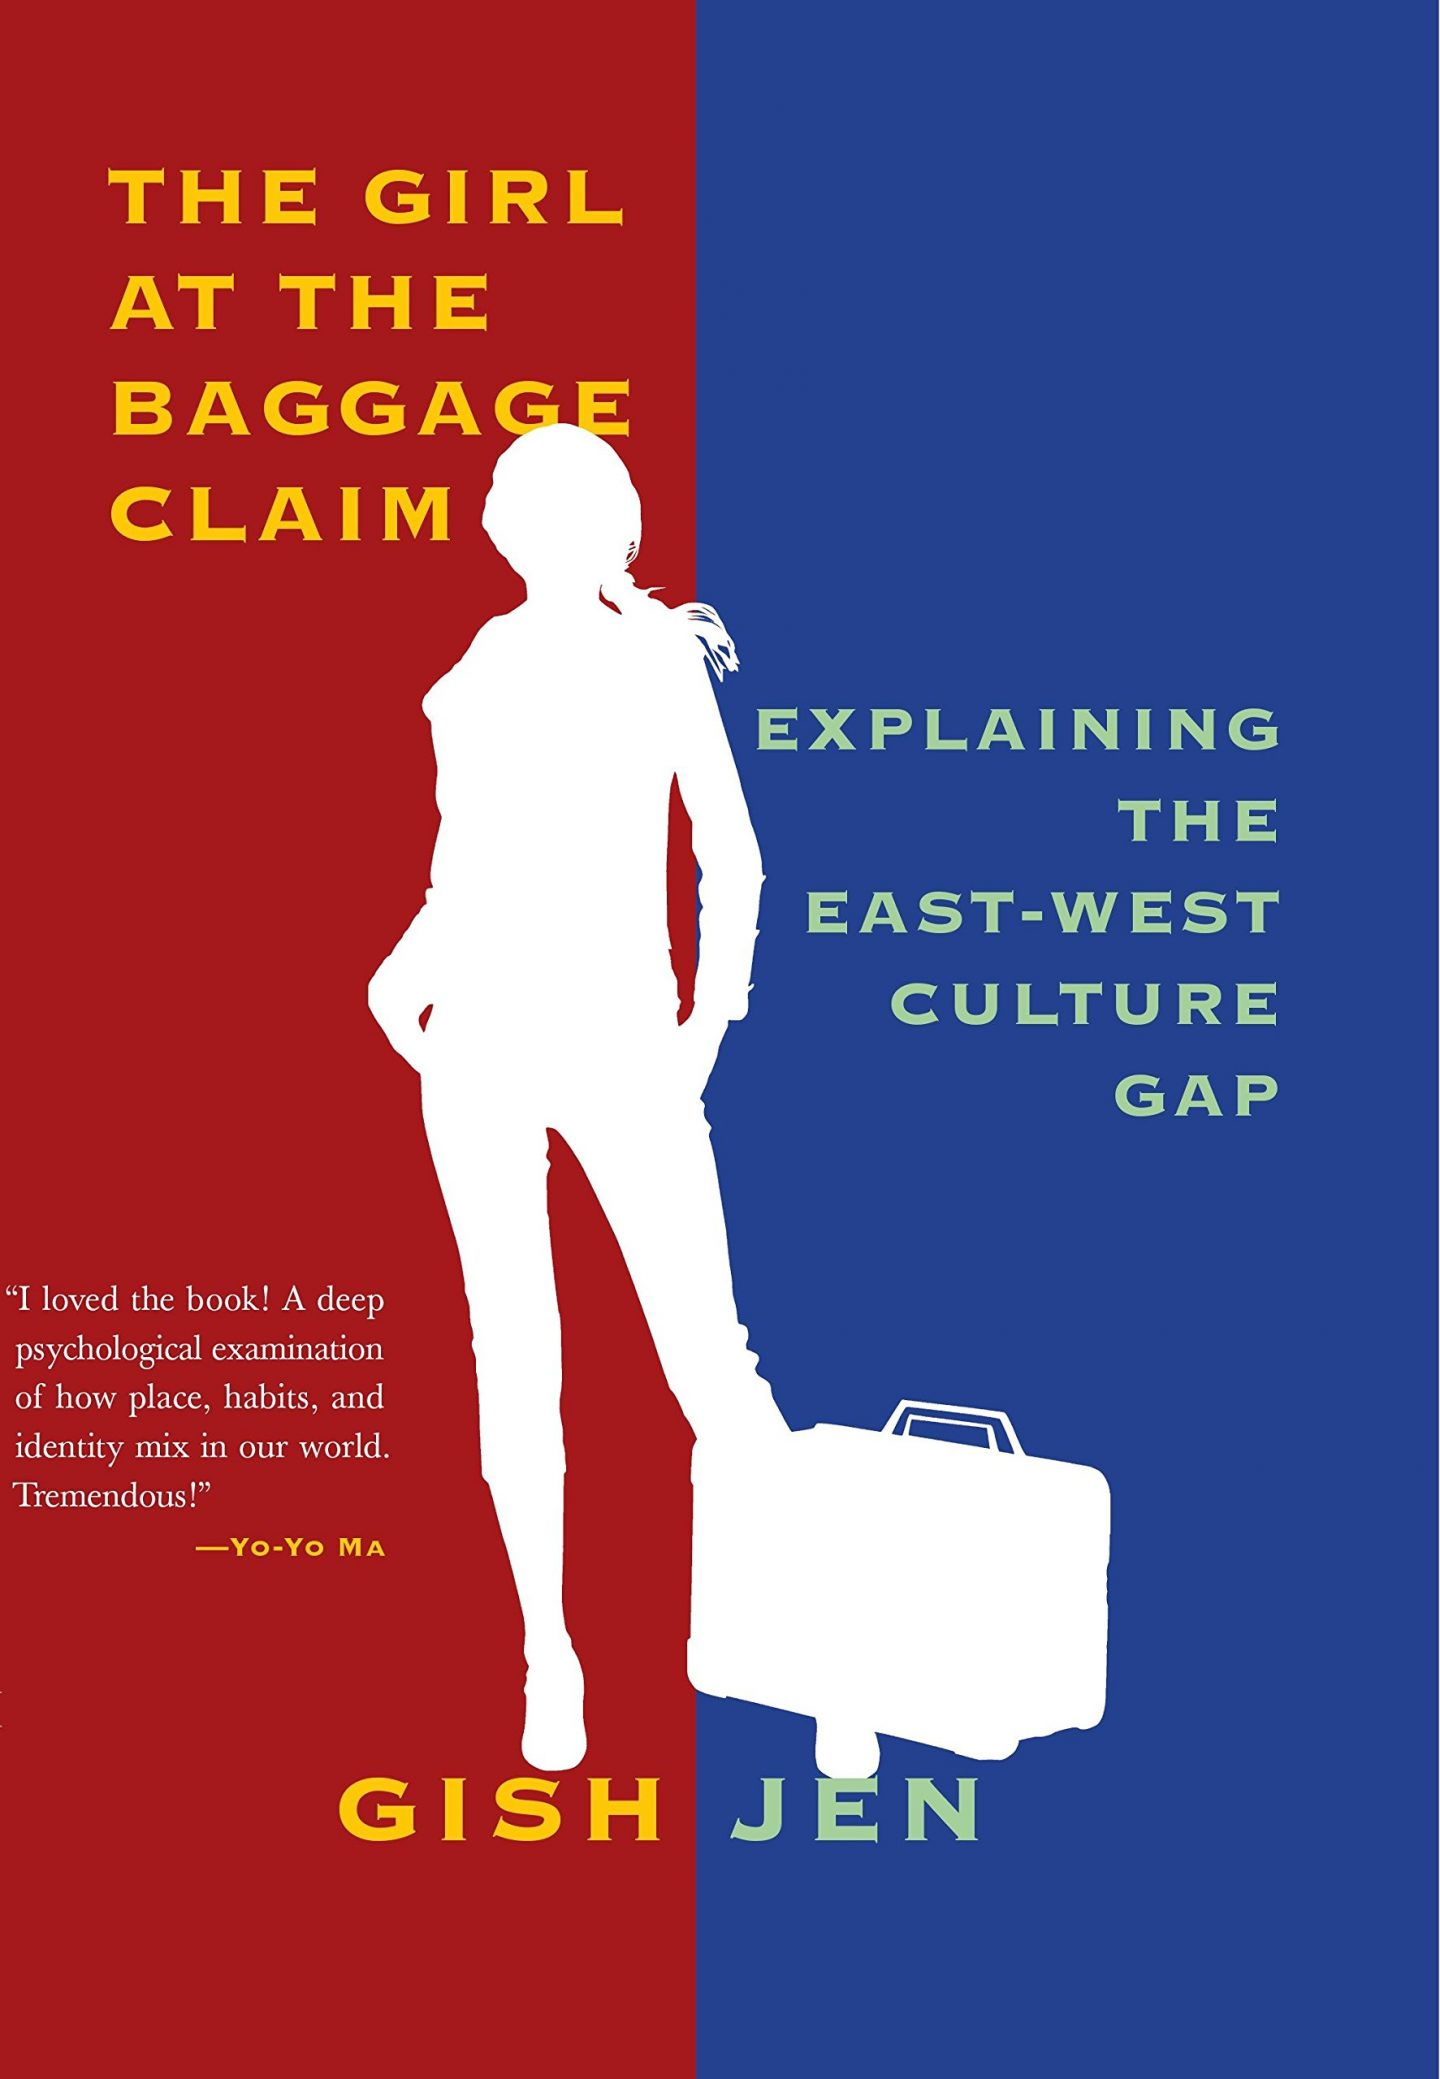 Book cover of The girl at the baggage claim by Gish Jen, diversity, summer reading list, inspiration